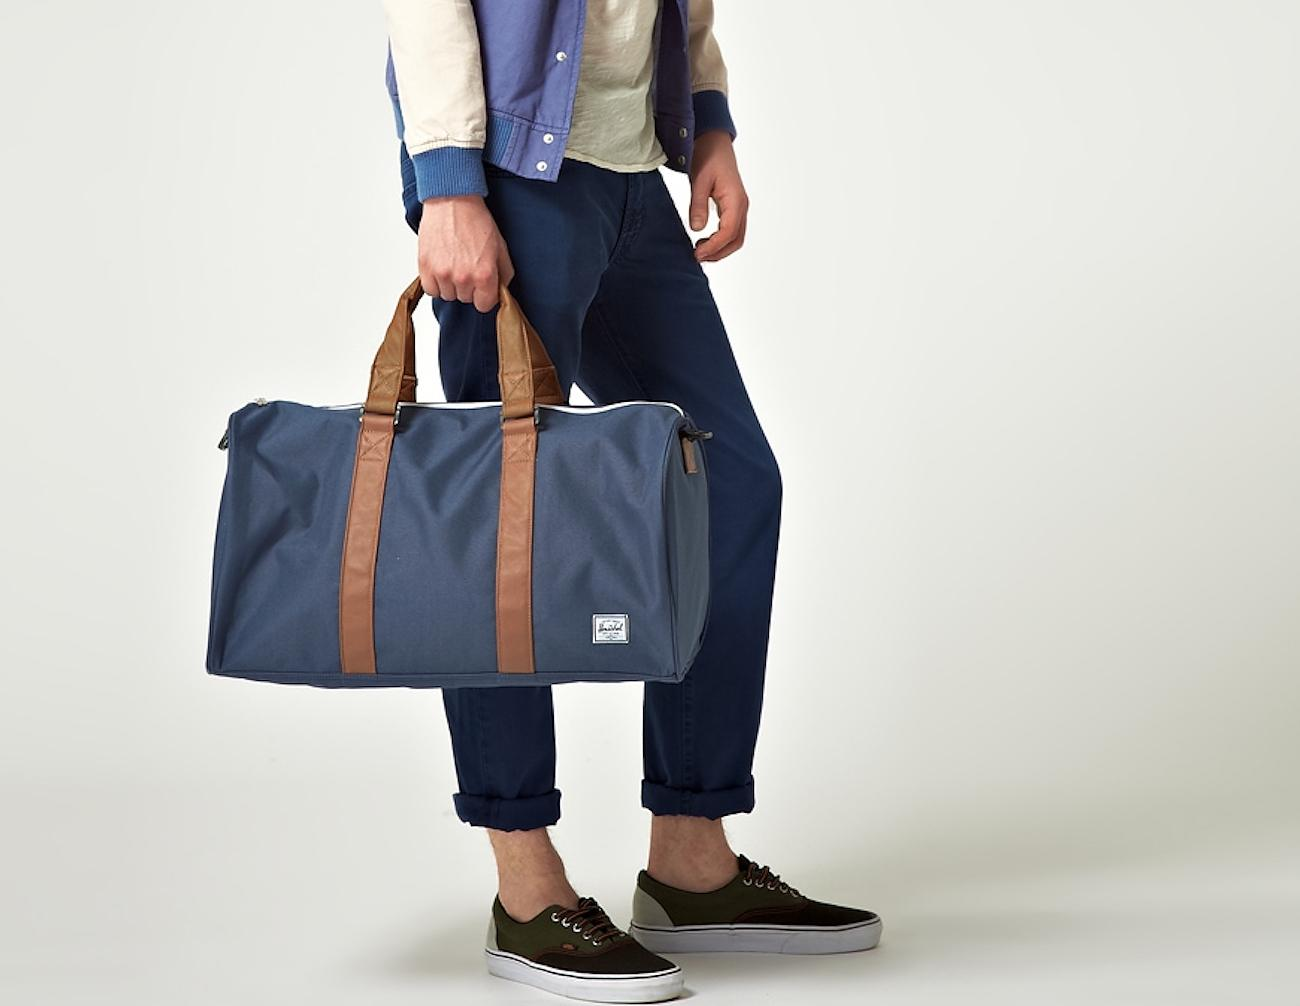 Herschel Novel Duffle Bag | Herschel Supply Backpacks | Herschel Duffle Bag